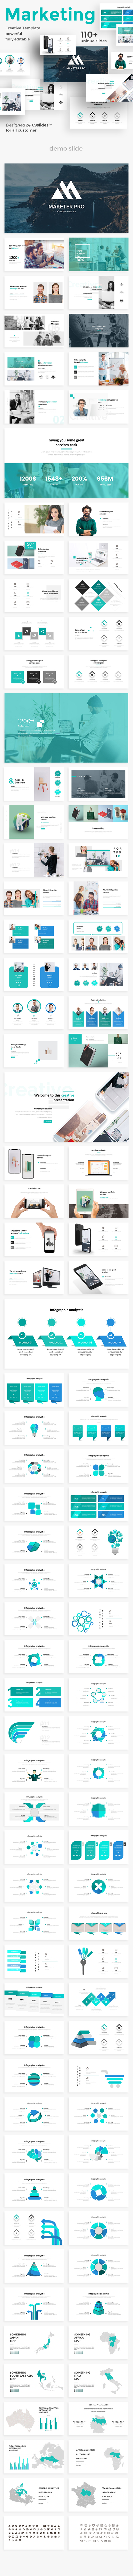 Marketer Pro Multipurpose Google Slide Template - Google Slides Presentation Templates